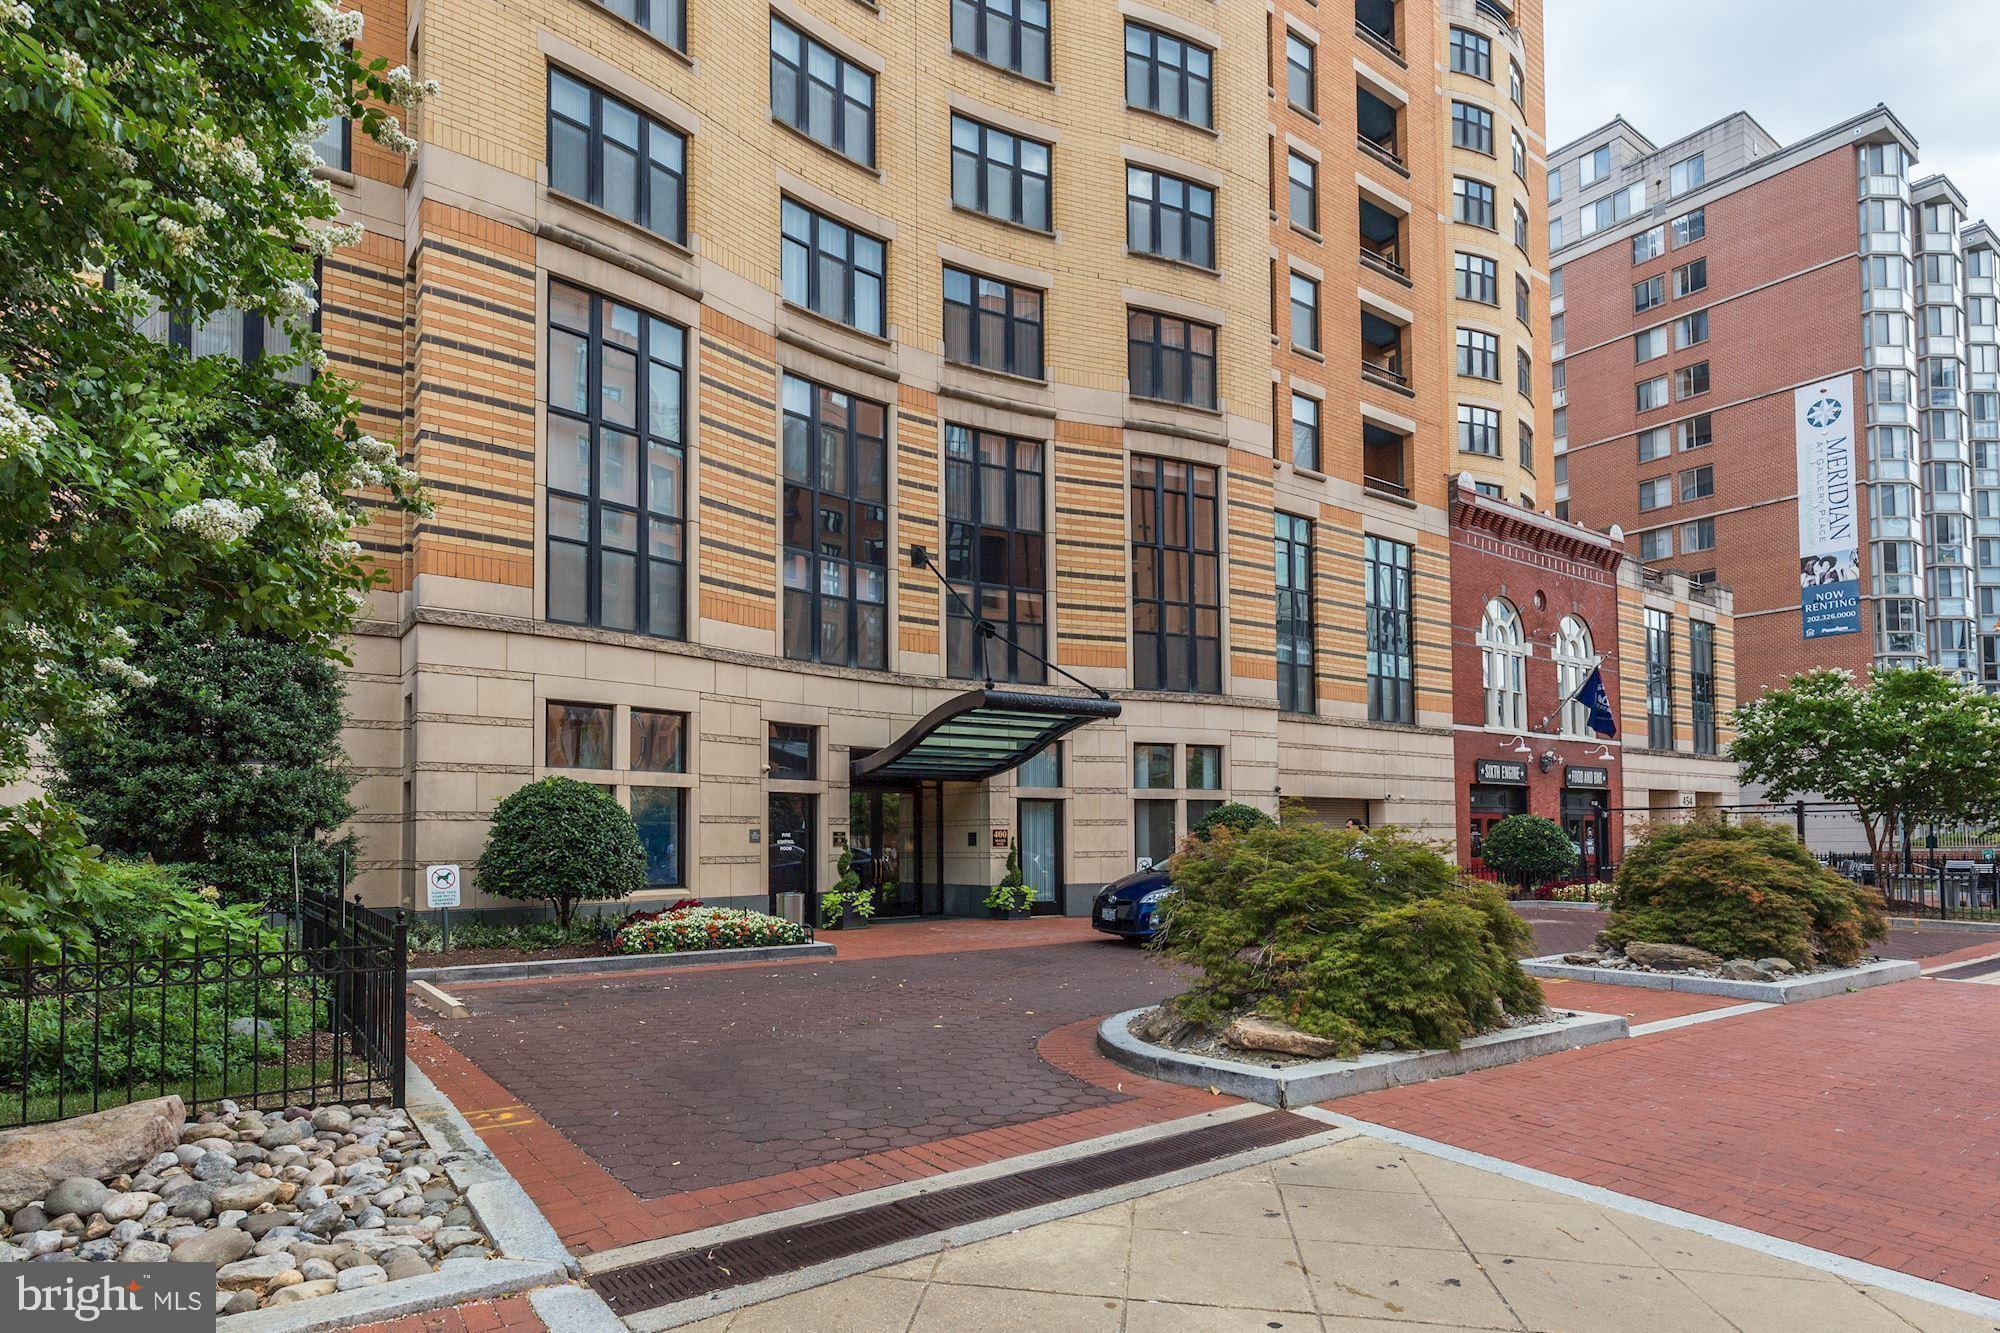 """Featured in the upcoming Washington Post """"Town Square"""" as one of D.C.'s most affordable of the week for first-time homebuyers! Check it out! Great downtown location.  Fantastic 8th floor turn-key condo in one of Mt. Vernon Triangle~s most popular addresses. This home has all the bells and whistles you~d expect and then some~.hardwood floors, granite counters, stainless appliances,Newer washer and dryer. Meticulously designed and improved for ease and comfort including sound proofing panels, black out blinds for lazy Saturdays and hand-crafted built in shelving for dining, working and entertaining.  Recently renovated mid-century modern inspired bathroom with wood paneling and subway tile. 400 Mass Ave is a FULL service building. 24 hour concierge to accept packages and provide helpful assistance. AMAZING rooftop with swimming pool, grills and 360* views of DC including a stunning view of the Washington Monument and U.S. Capitol. This is """"the place to be"""".  Reserve one of many different areas for your next get-together with friends. A newly renovated party room (2nd floor). Business center for quiet work space. Large on-site gym (3rd floor). Garage parking available and pet friendly! Basic Verizon Fios wifi is included in condo fee. Super accessible~just 3 blocks to Red, Blue, Yellow and Green Metro Stations and easy access to I-395.. 94 Walk Score, 100 Transit Score, 95 Bike Score. Anything and everything can convey!! Your choice!"""